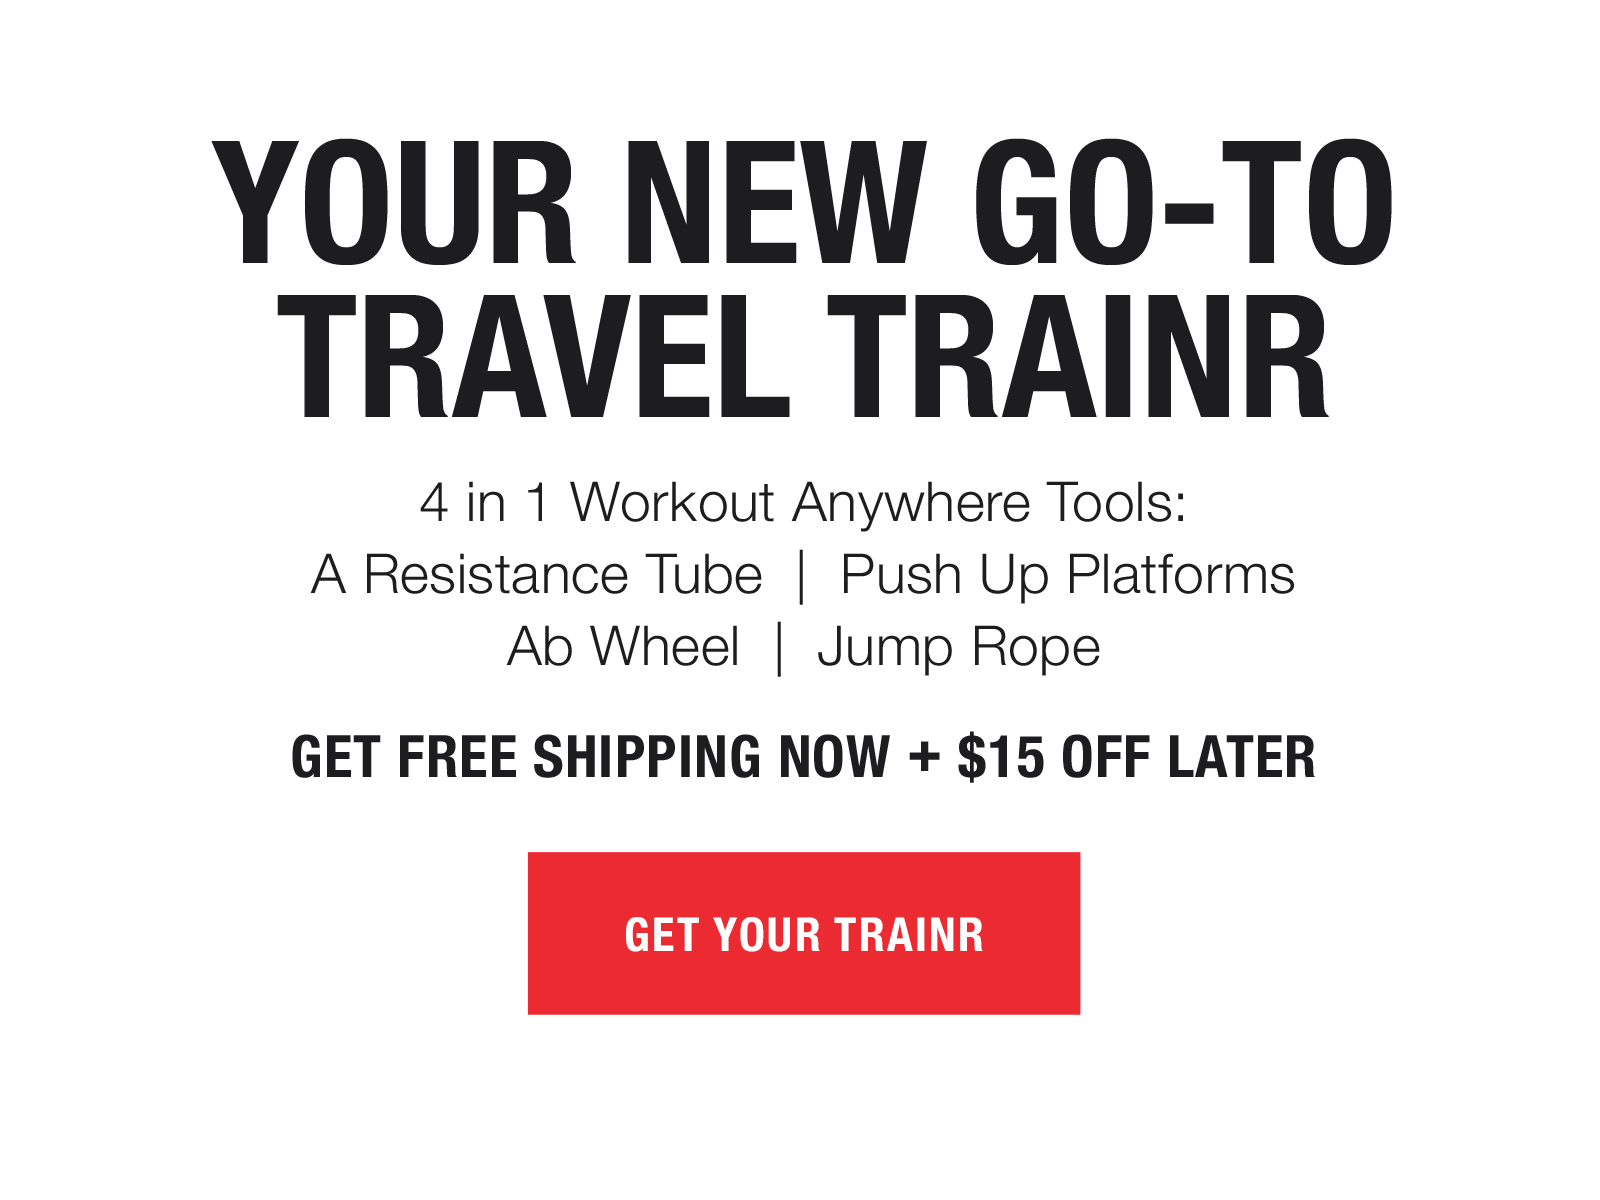 Your new Travel Trainr exercise tool